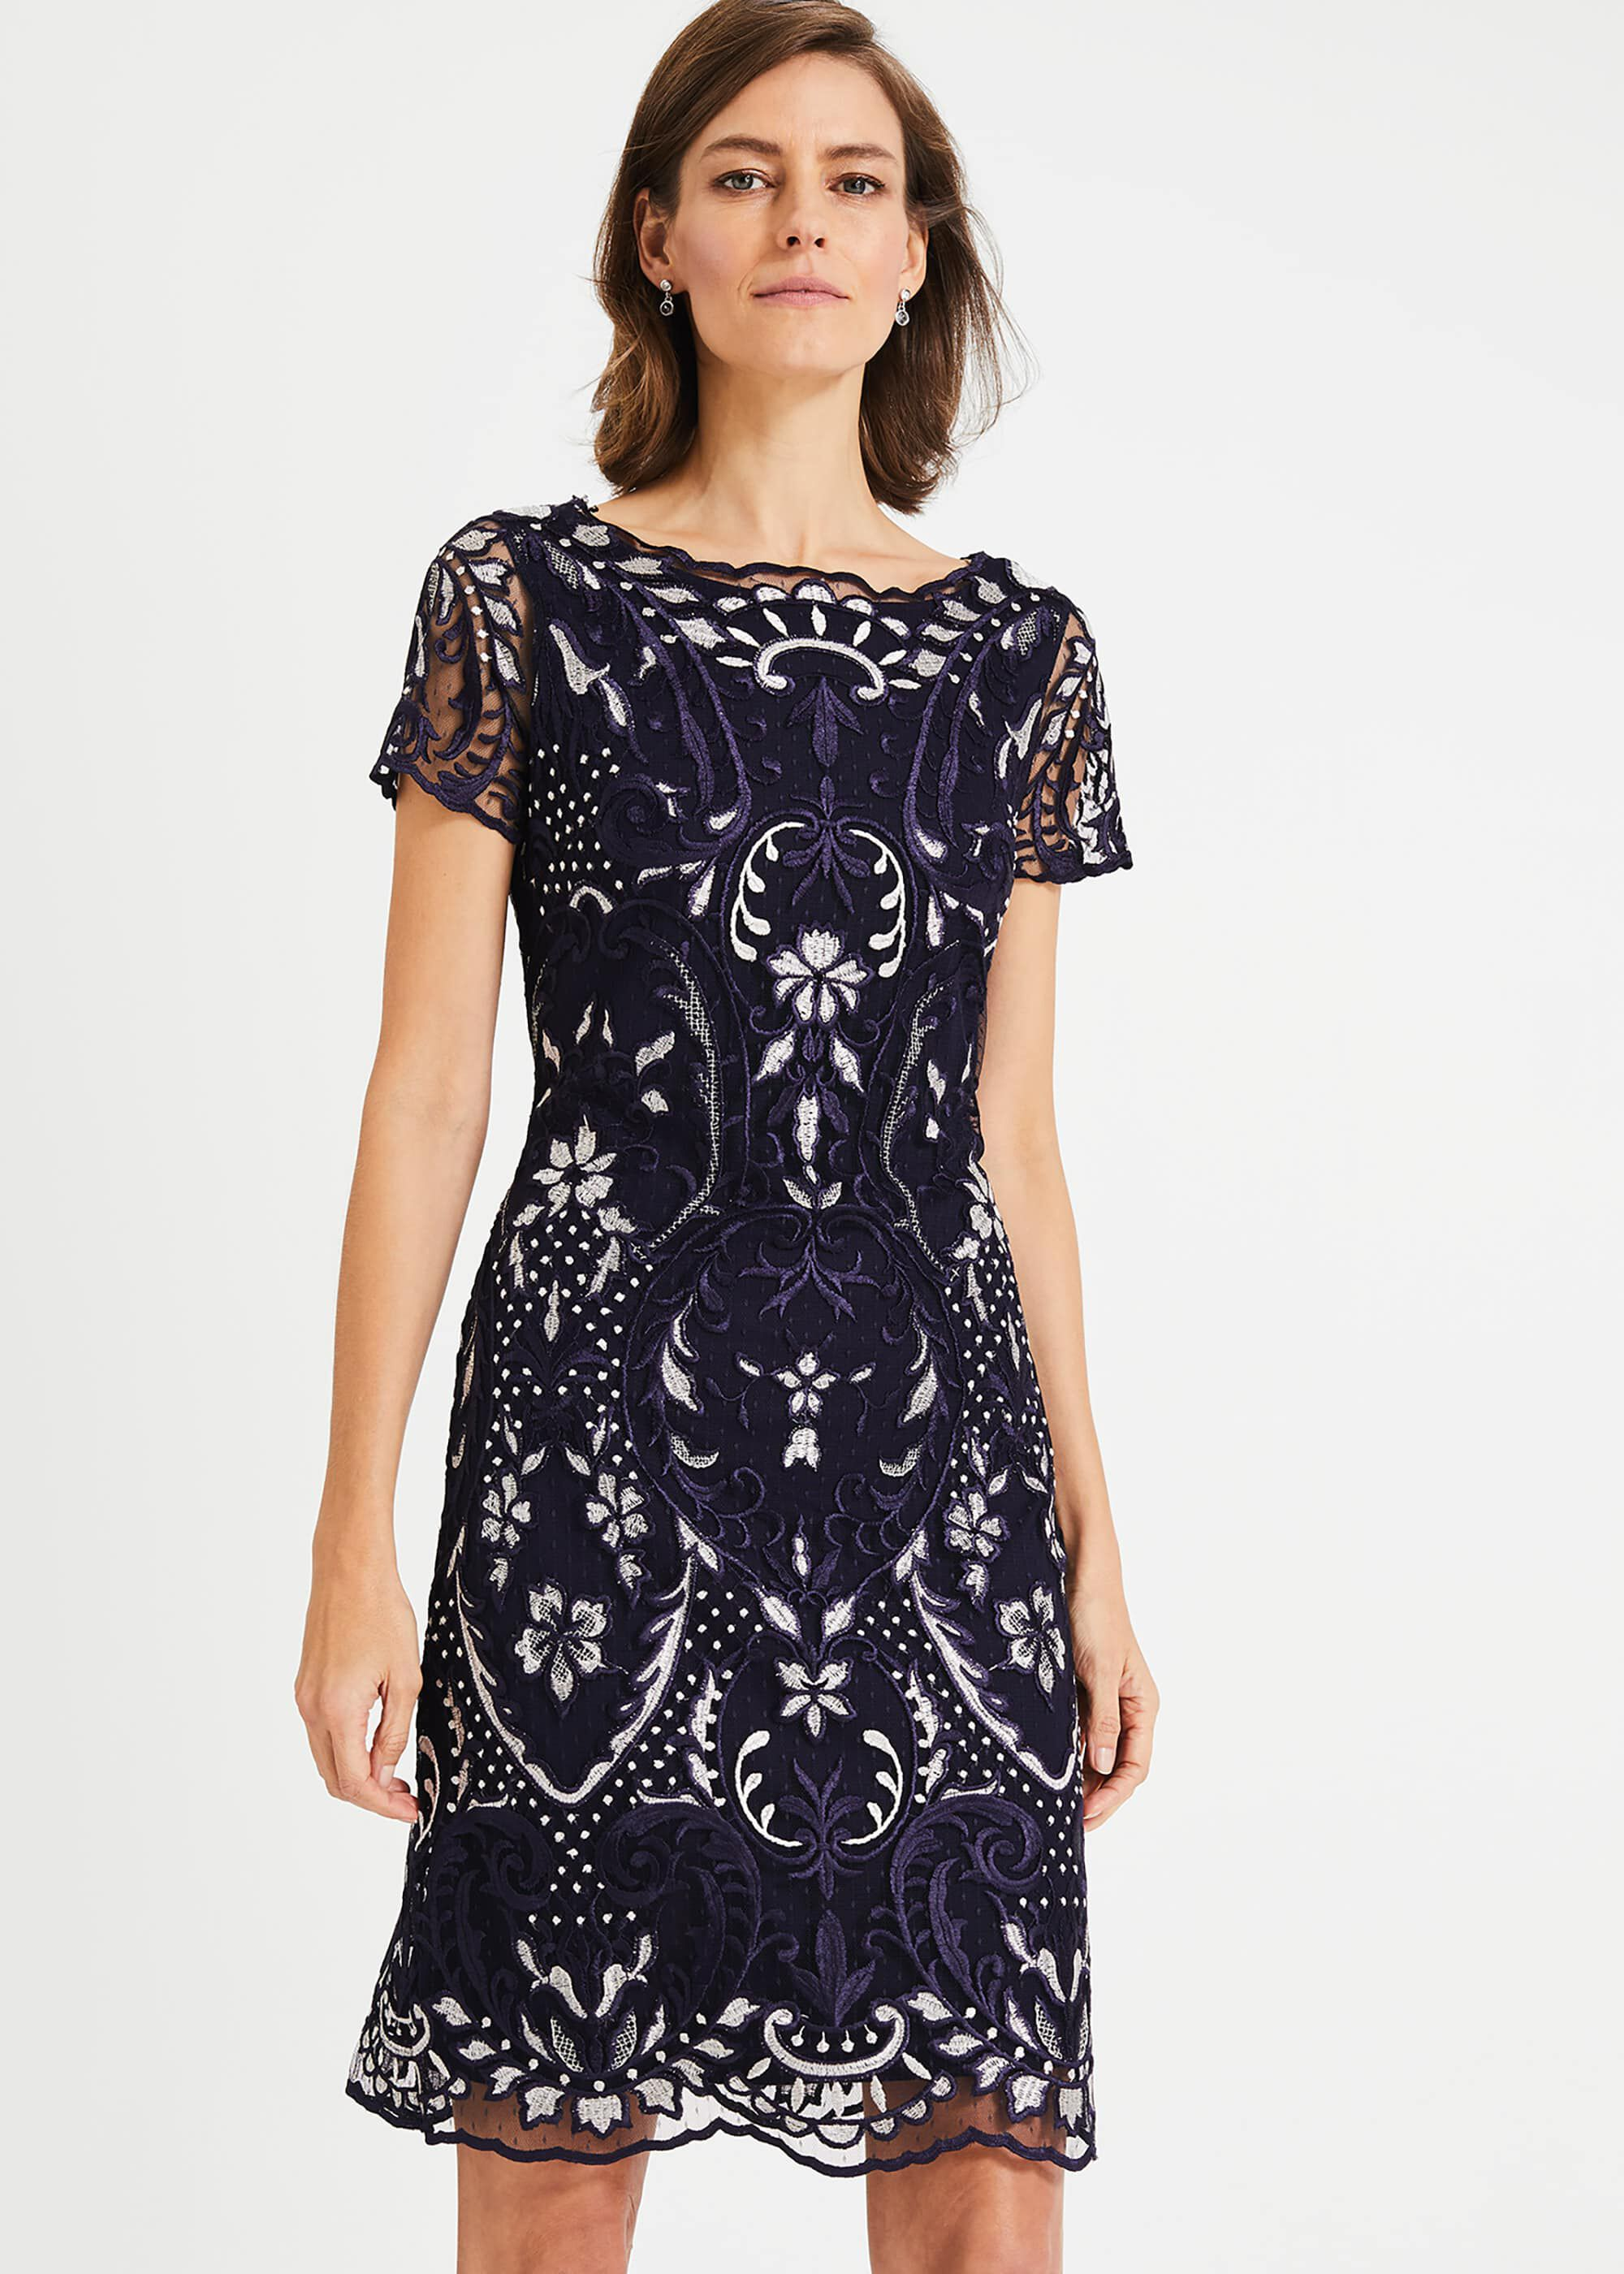 Phase Eight Lizzy Embroidered Dress, Blue, Shift, Occasion Dress